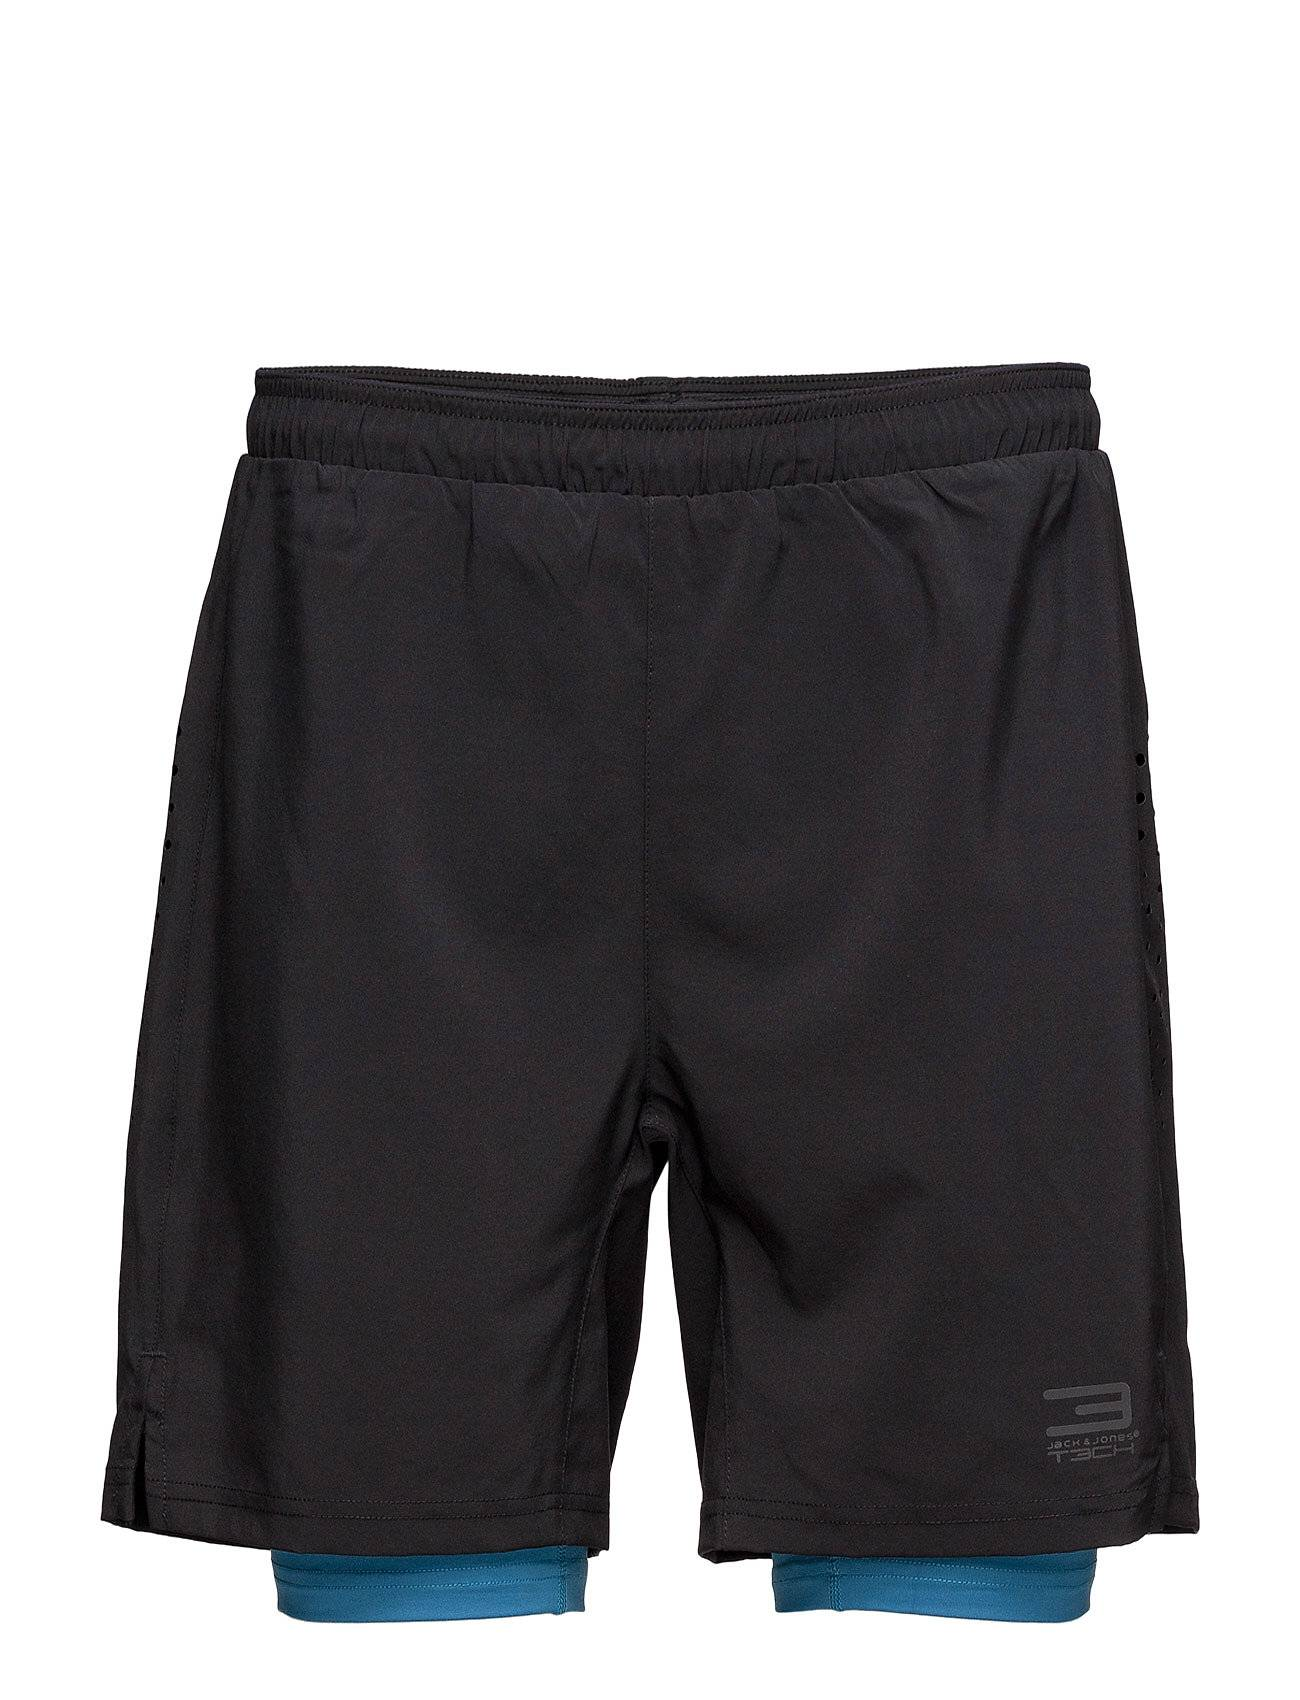 Jack & Jones Tech Jjtbeat Shorts